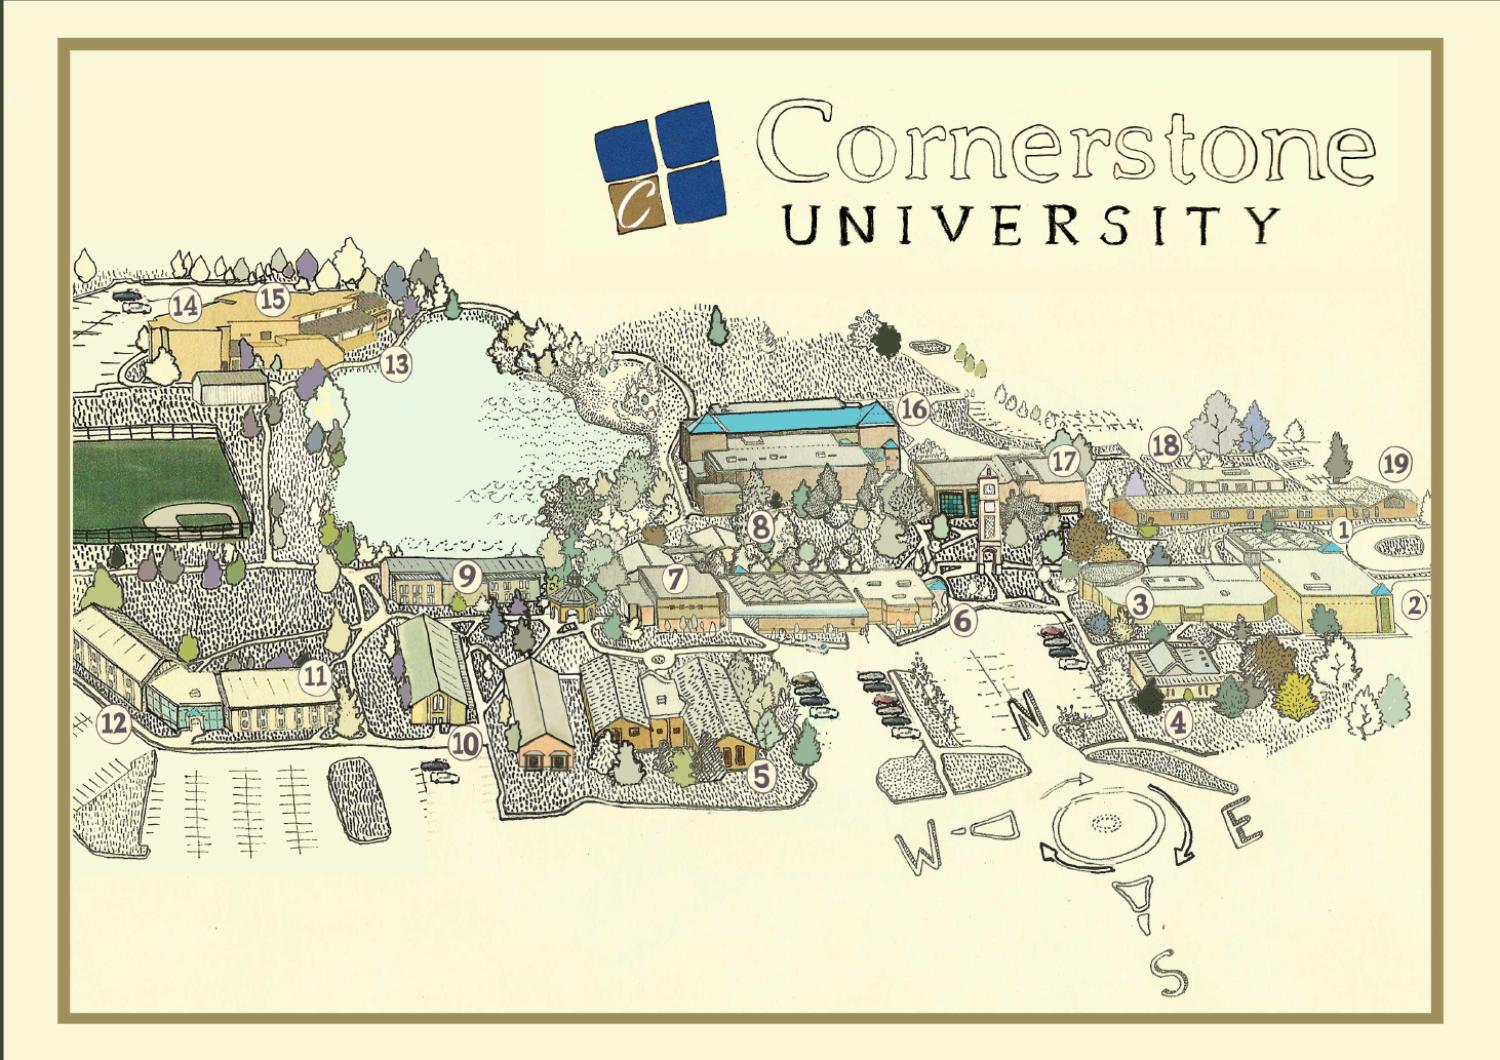 St Norbert College Campus Map.Walden University Counseling Program Cornerstone University Campus Map